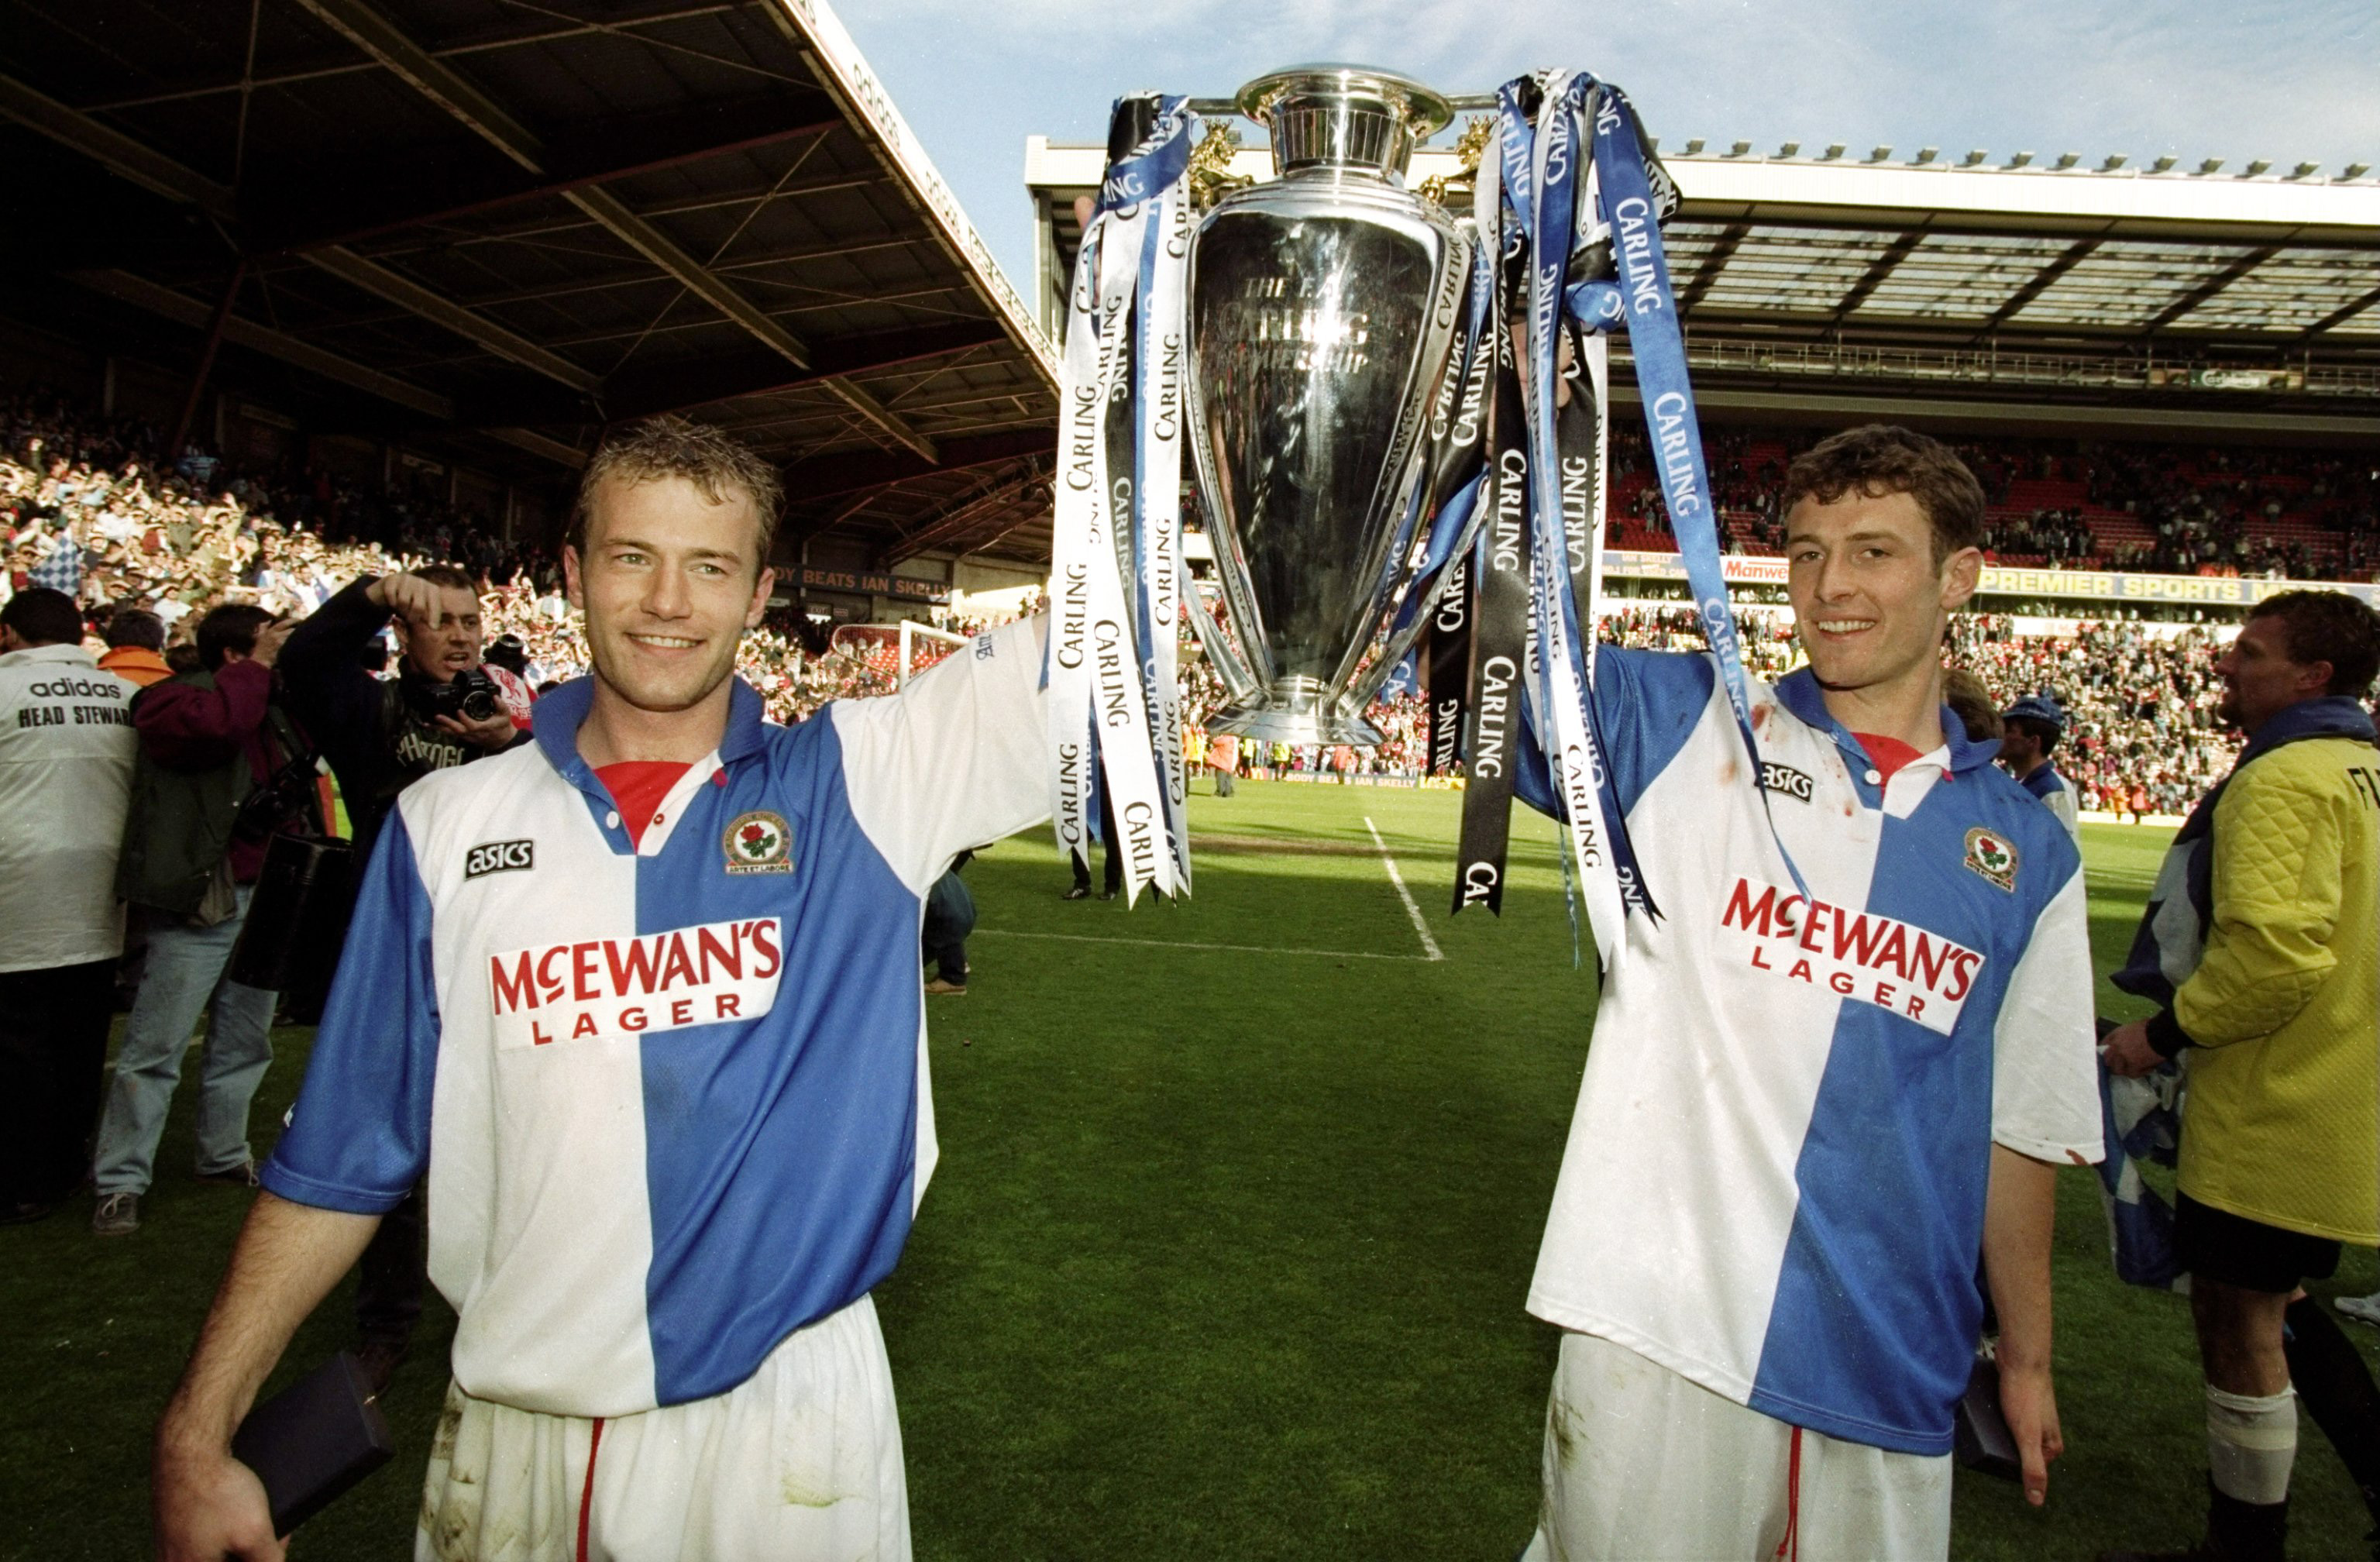 14 May 1998:  Alan Shearer and Chris Sutton of Blackburn Rovers celebrate with the Premiership trophy after winning the Premiership title during the FA Carling Premiership match against Liverpool played at Anfield in Liverpool, England.  The match finishe